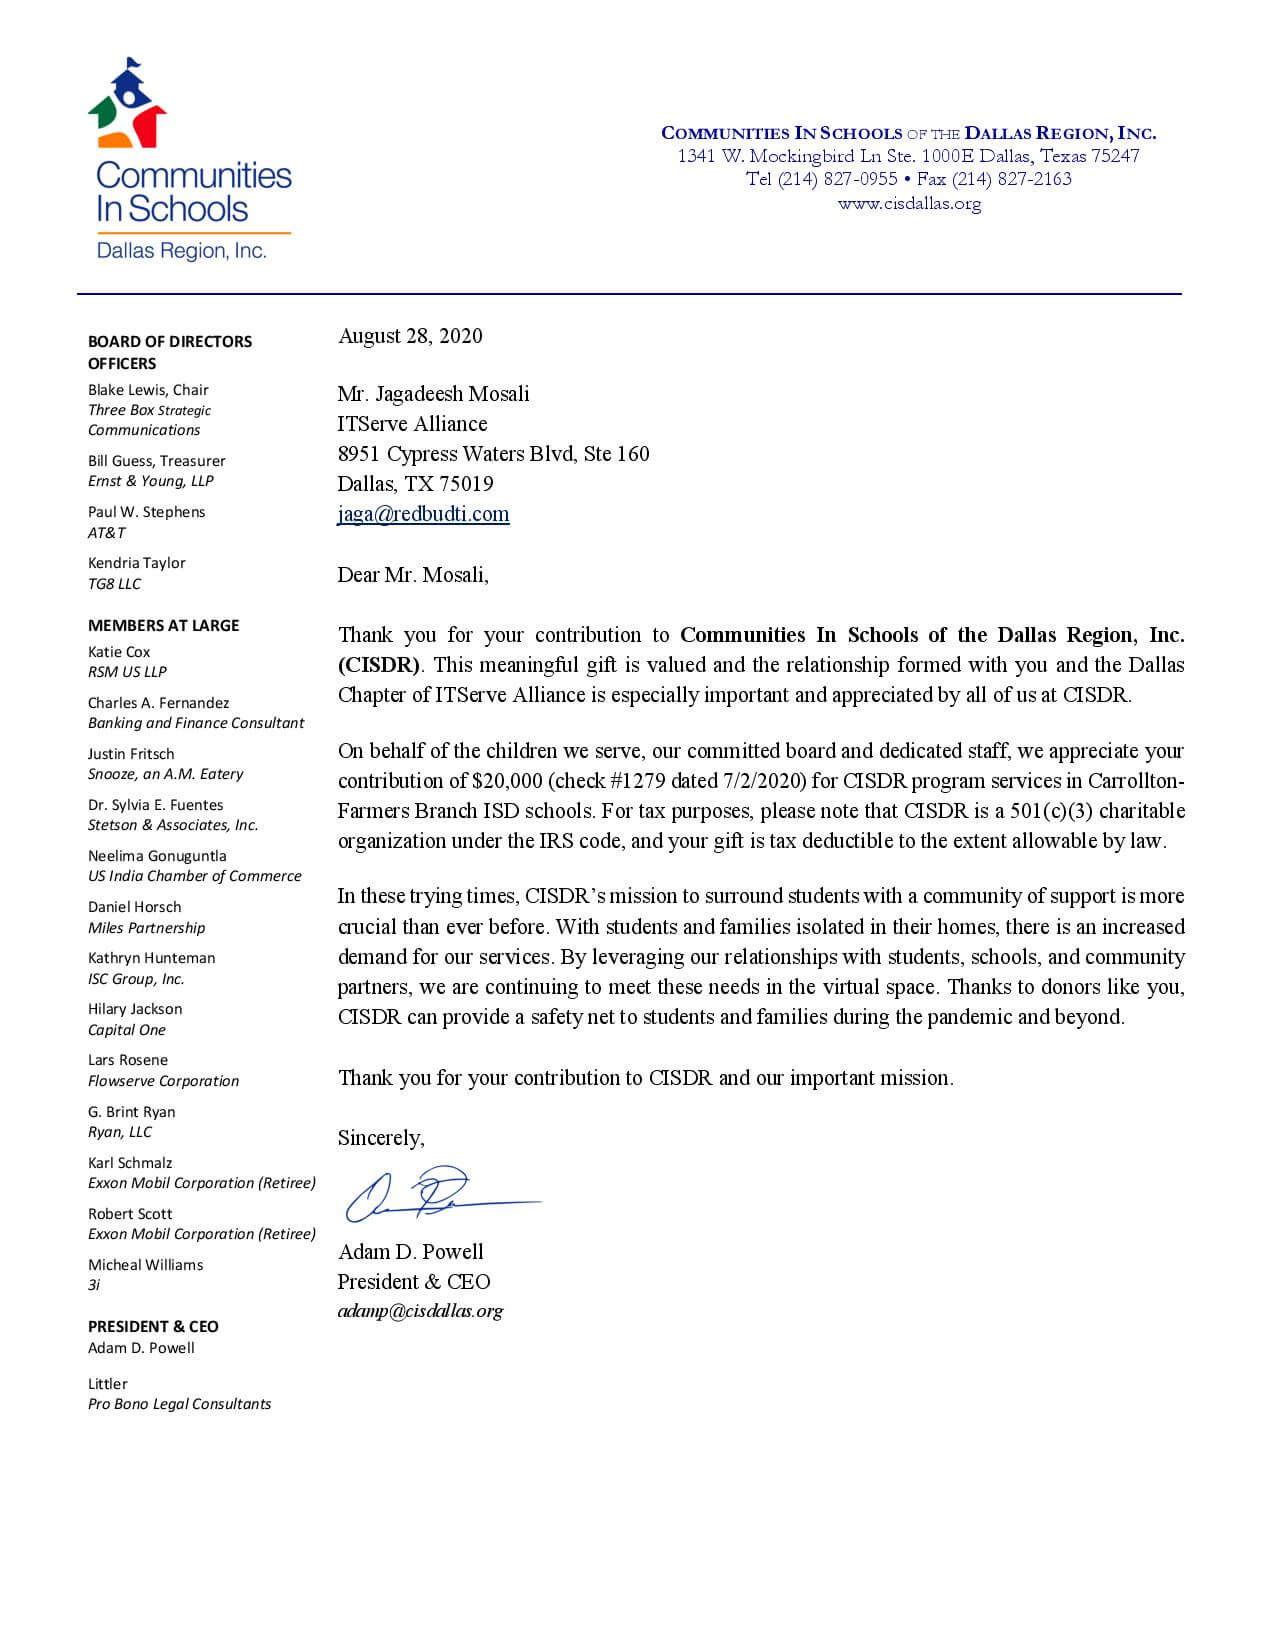 Received a Thank You letter From Communities in Schools of The Dallas Region